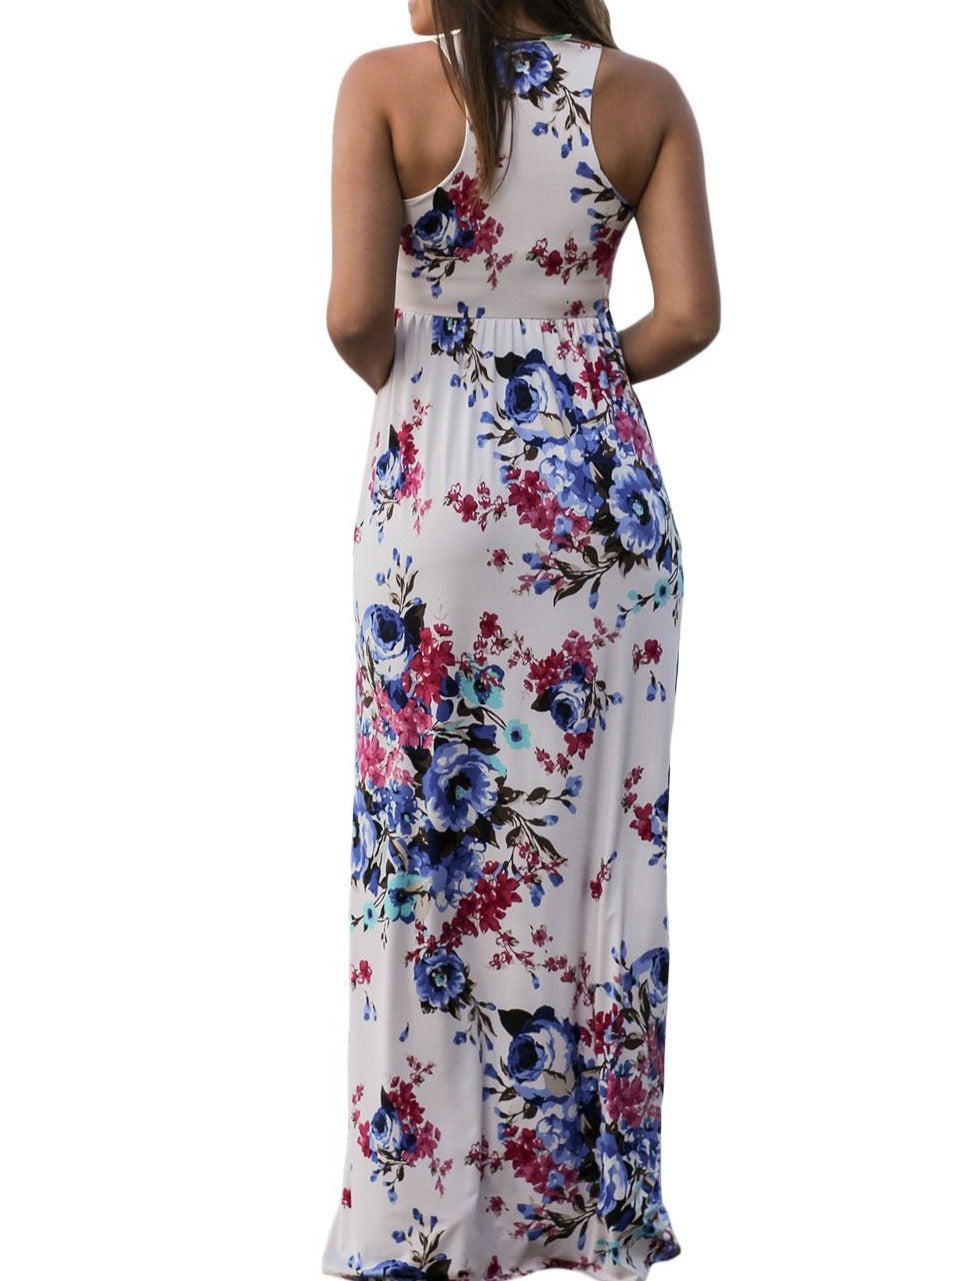 White Floral Print Sleeveless Long Boho Dress